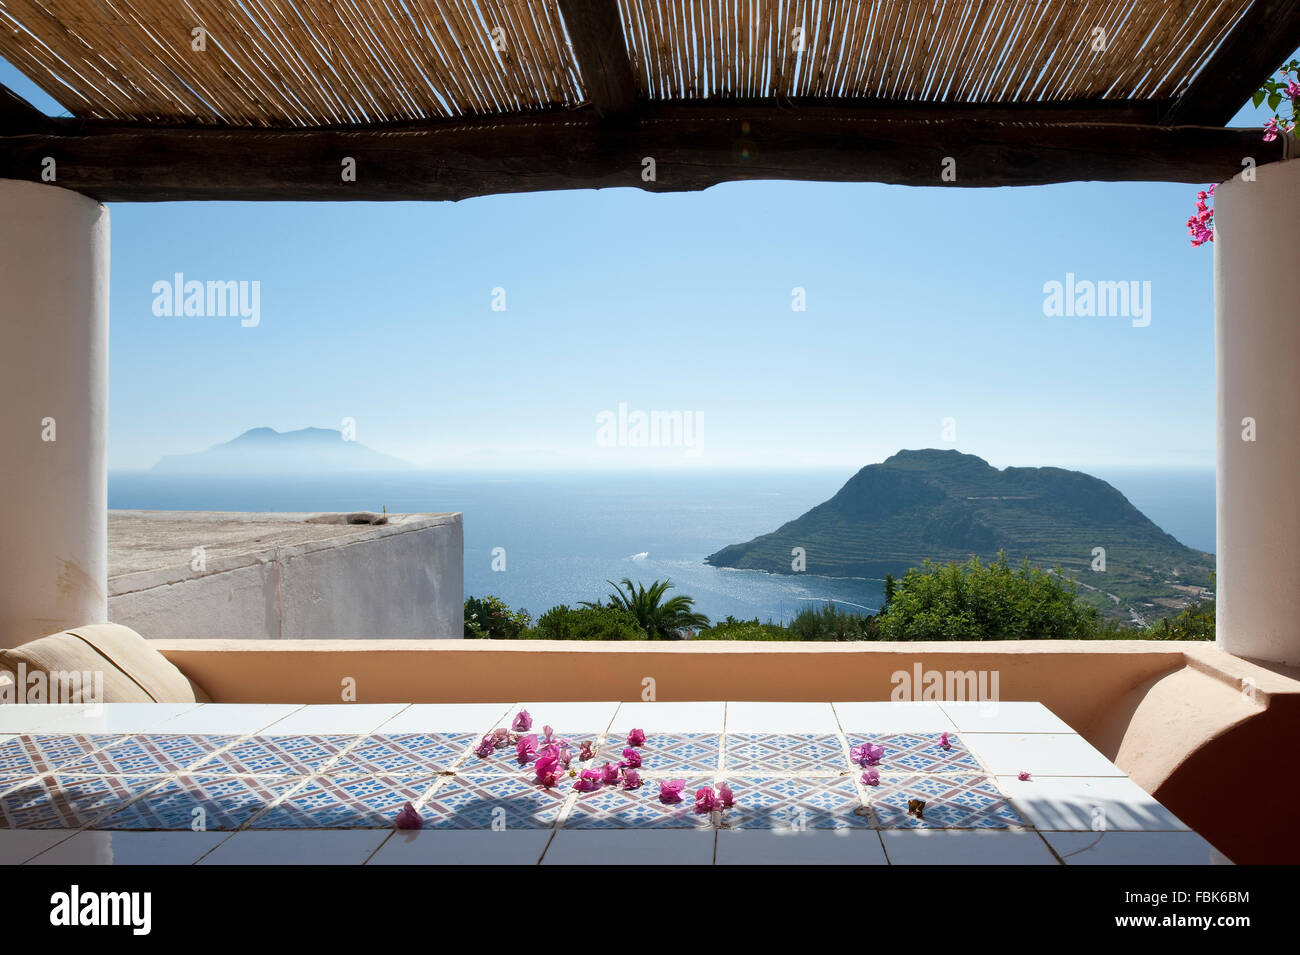 Sea view from balcony off the island of Filicudi, Eolie; Sicily Stock Photo